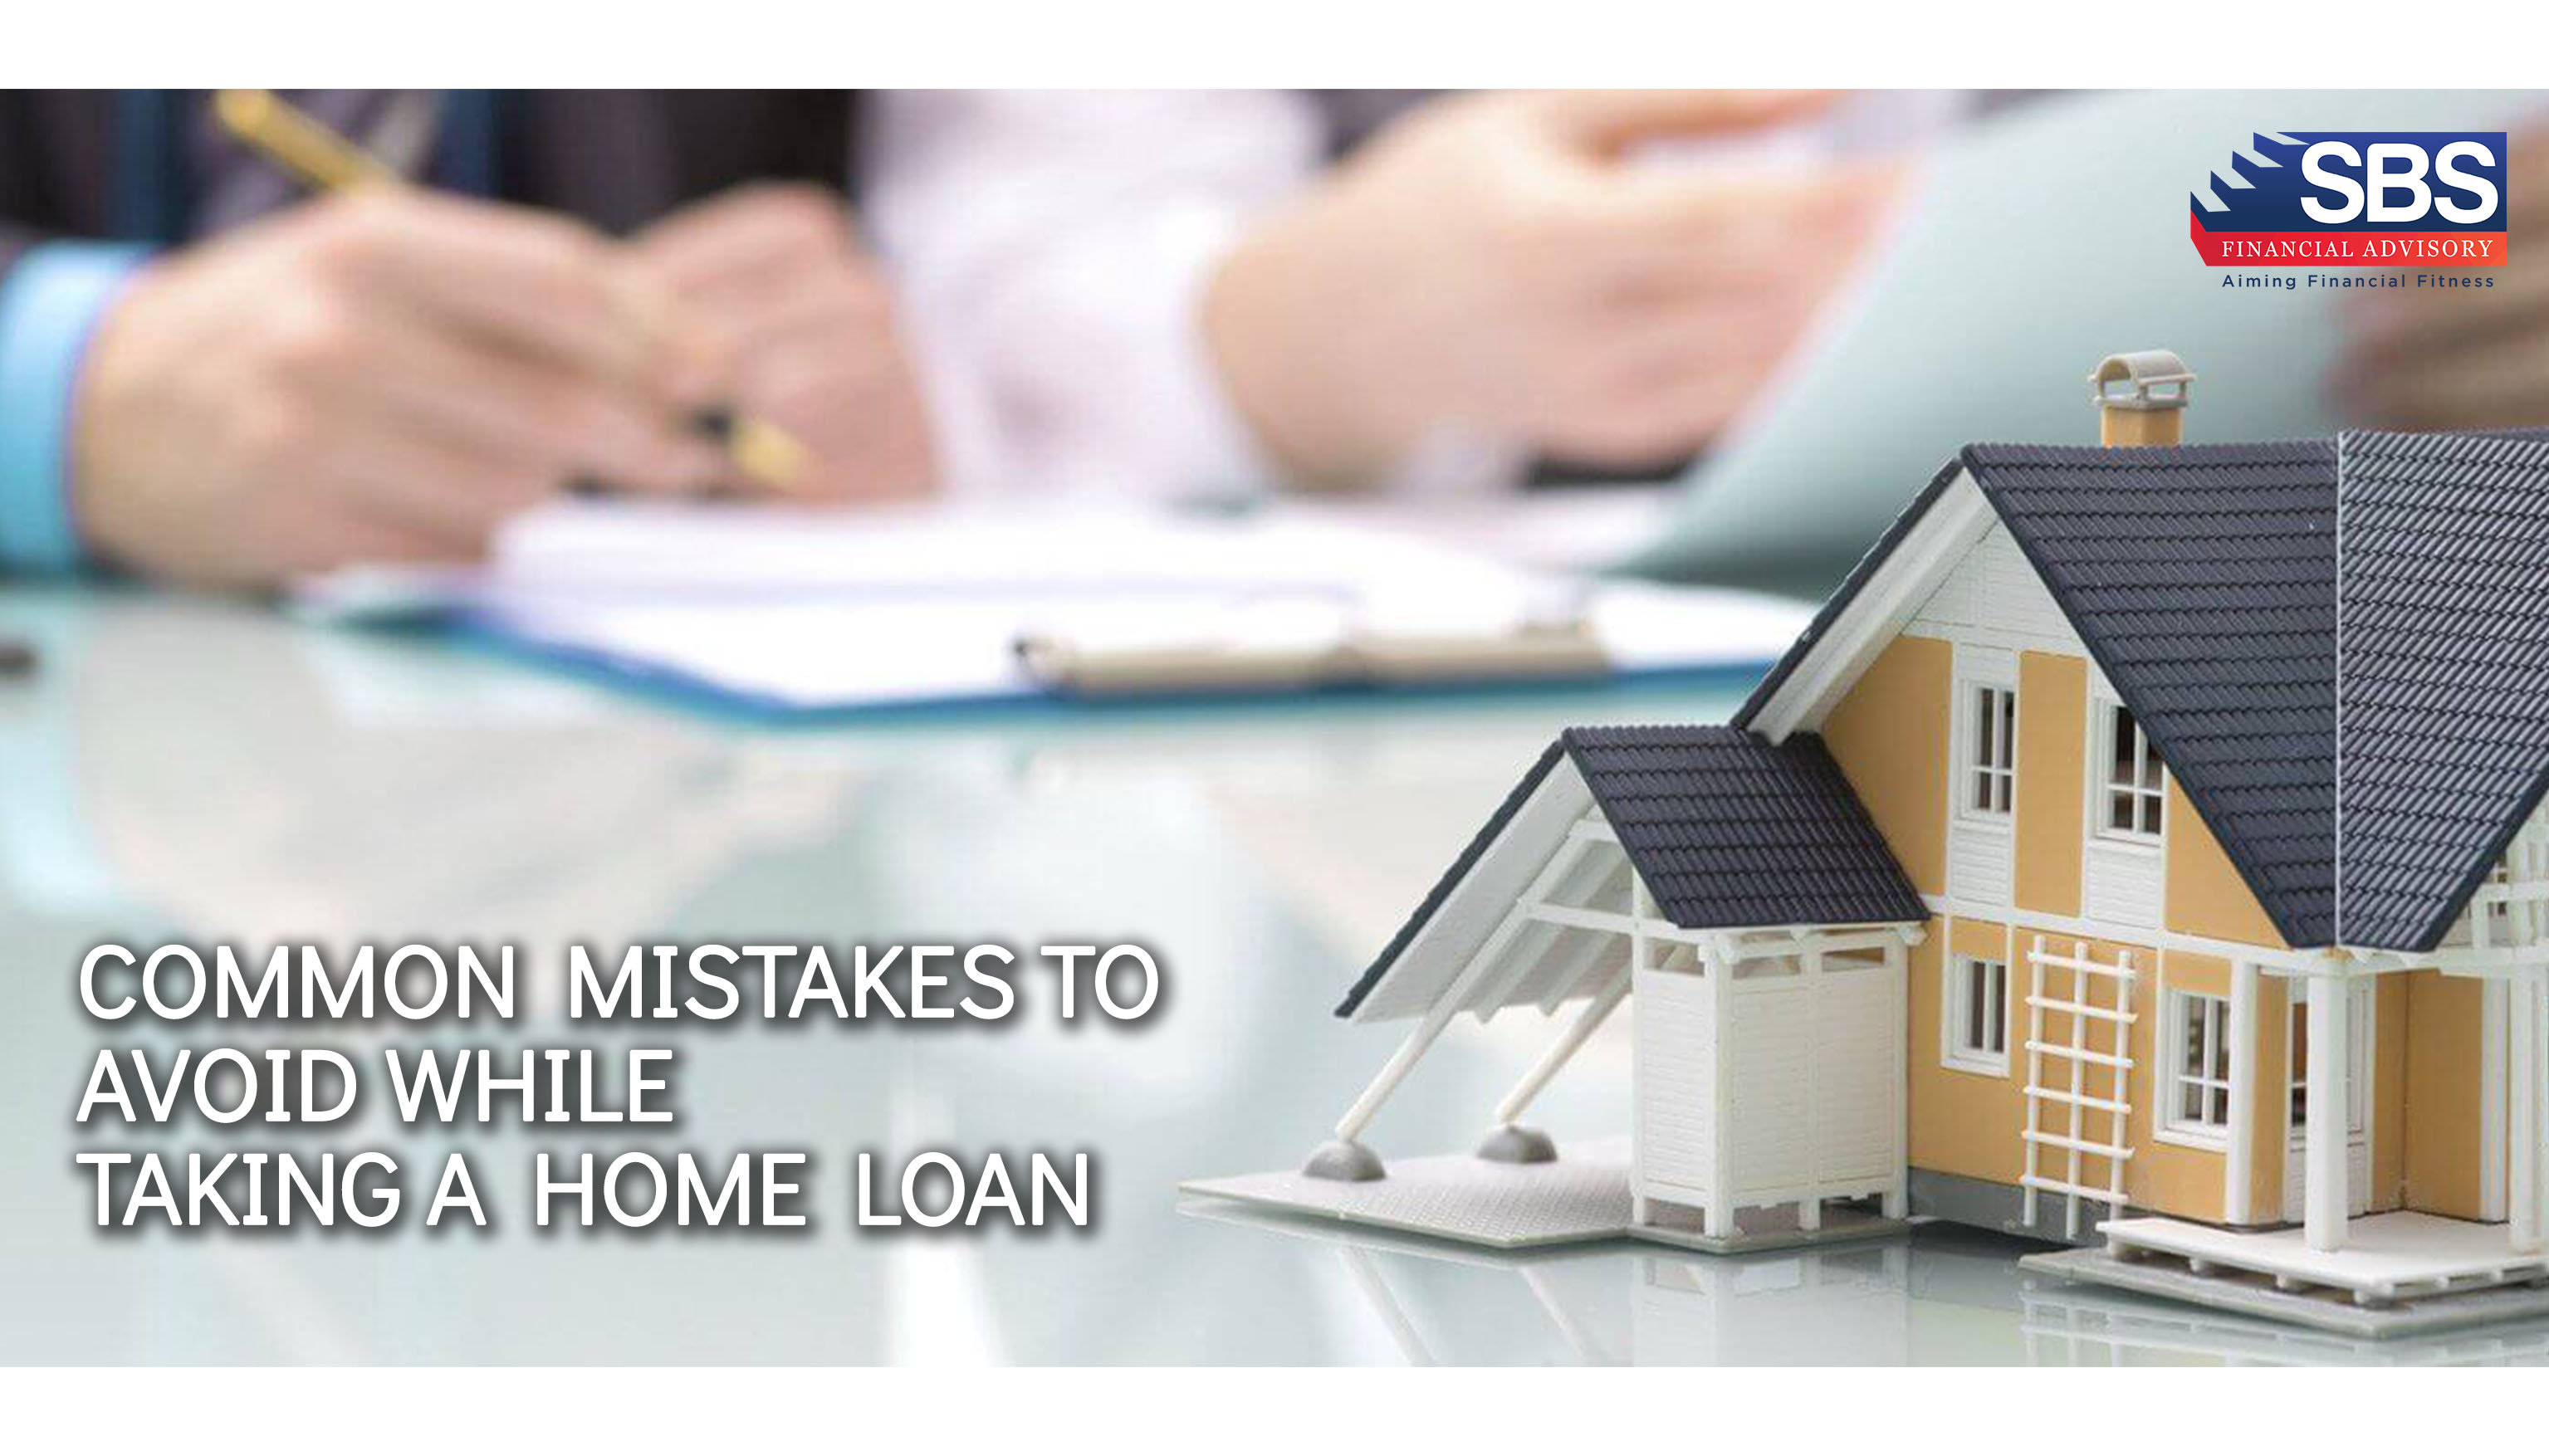 Common Mistakes To Avoid While Taking A Home Loan